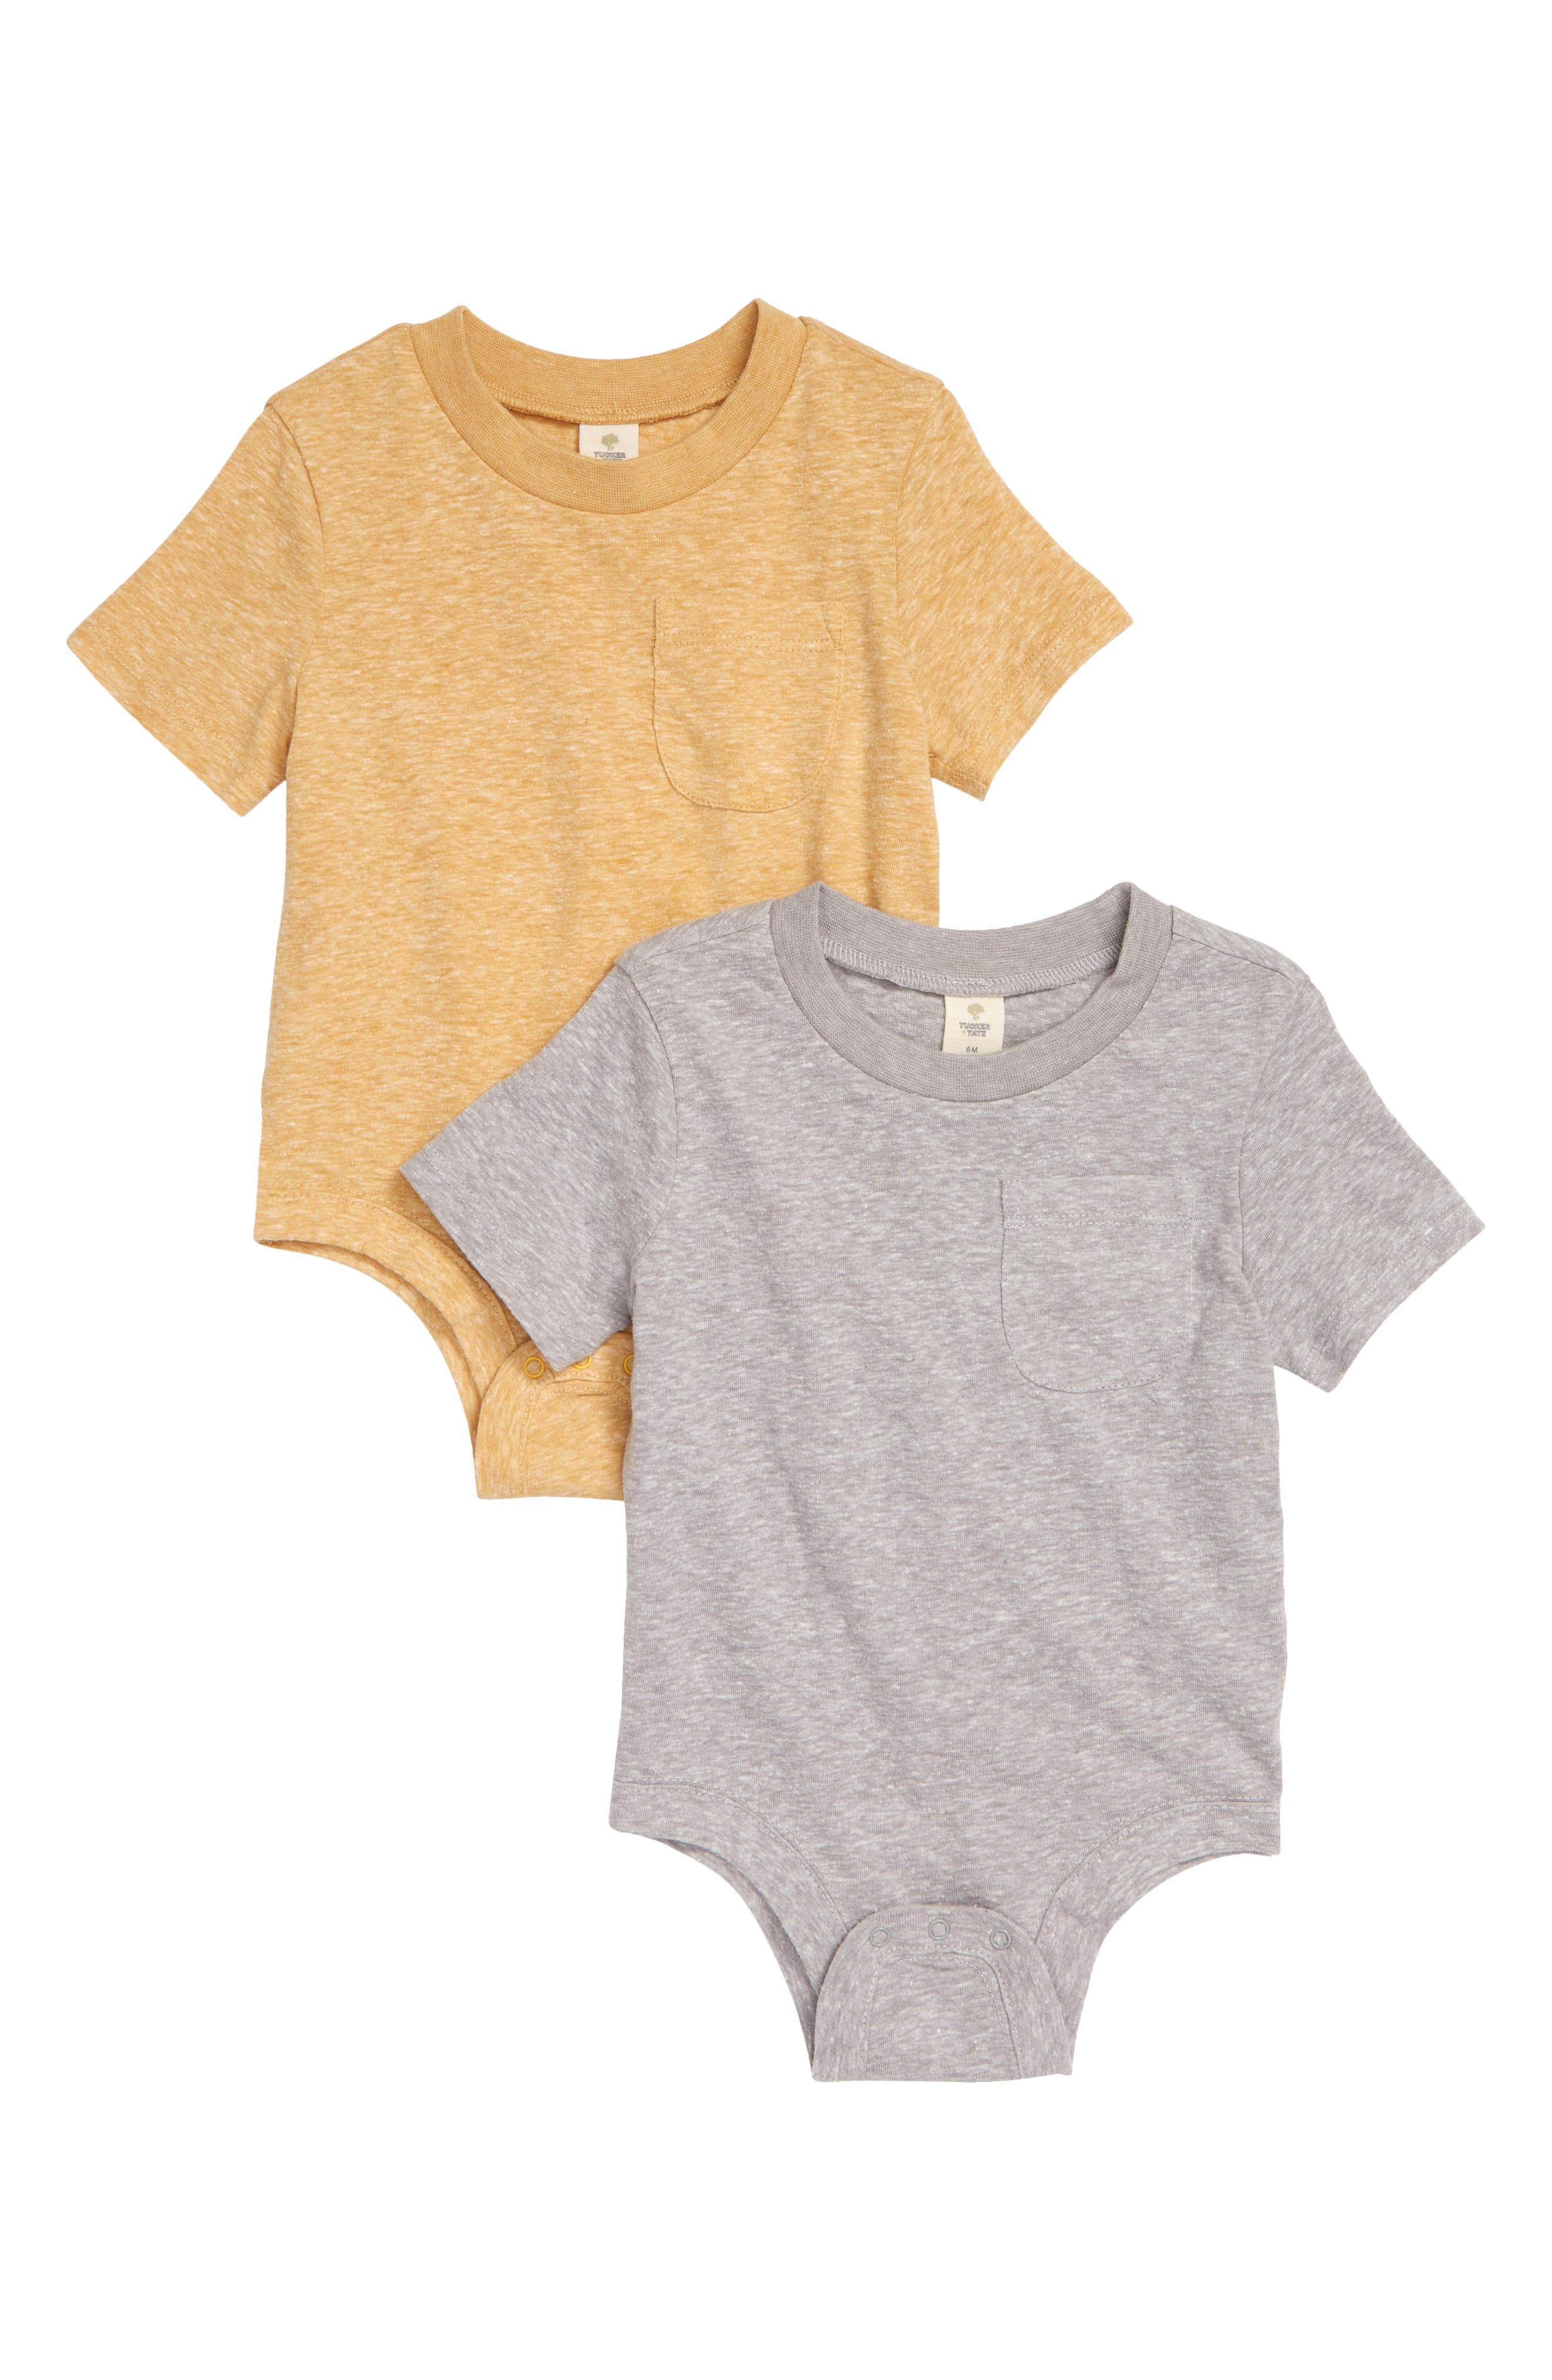 A softly heathered cotton blend brings comfort and a sporty kick to a set of easy-on bodysuits made with short sleeves and handsome little chest pockets. Style Name: Tucker + Tate 2-Pack Short Sleeve Bodysuits (Baby). Style Number: 6011225. Available in stores.